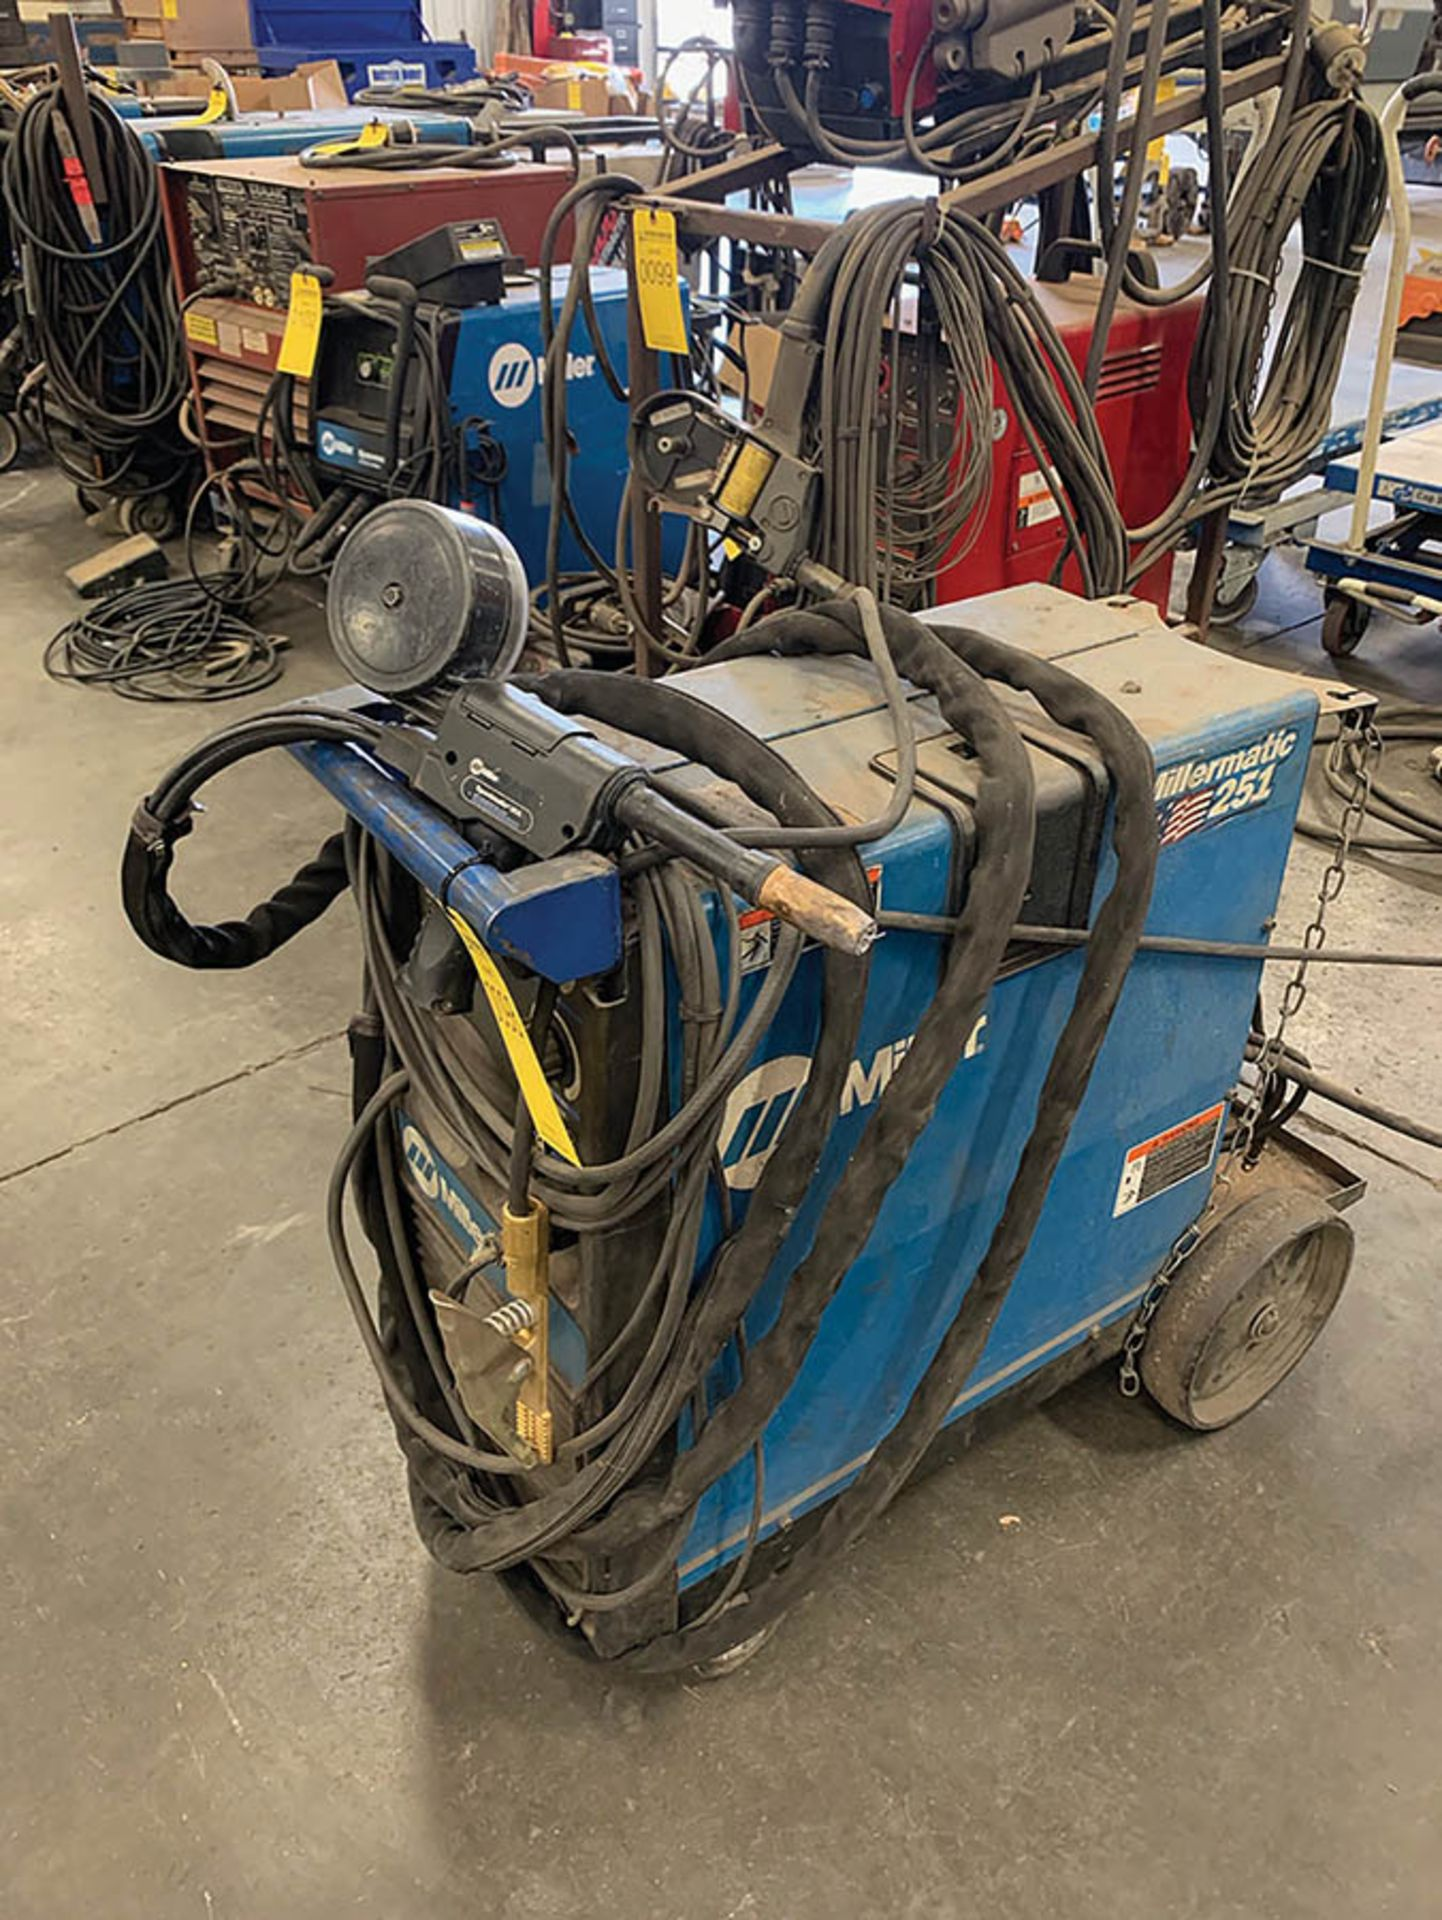 Lot 98 - MILLER 251 WIRE FEEDER WELDER, S/N LG340363B